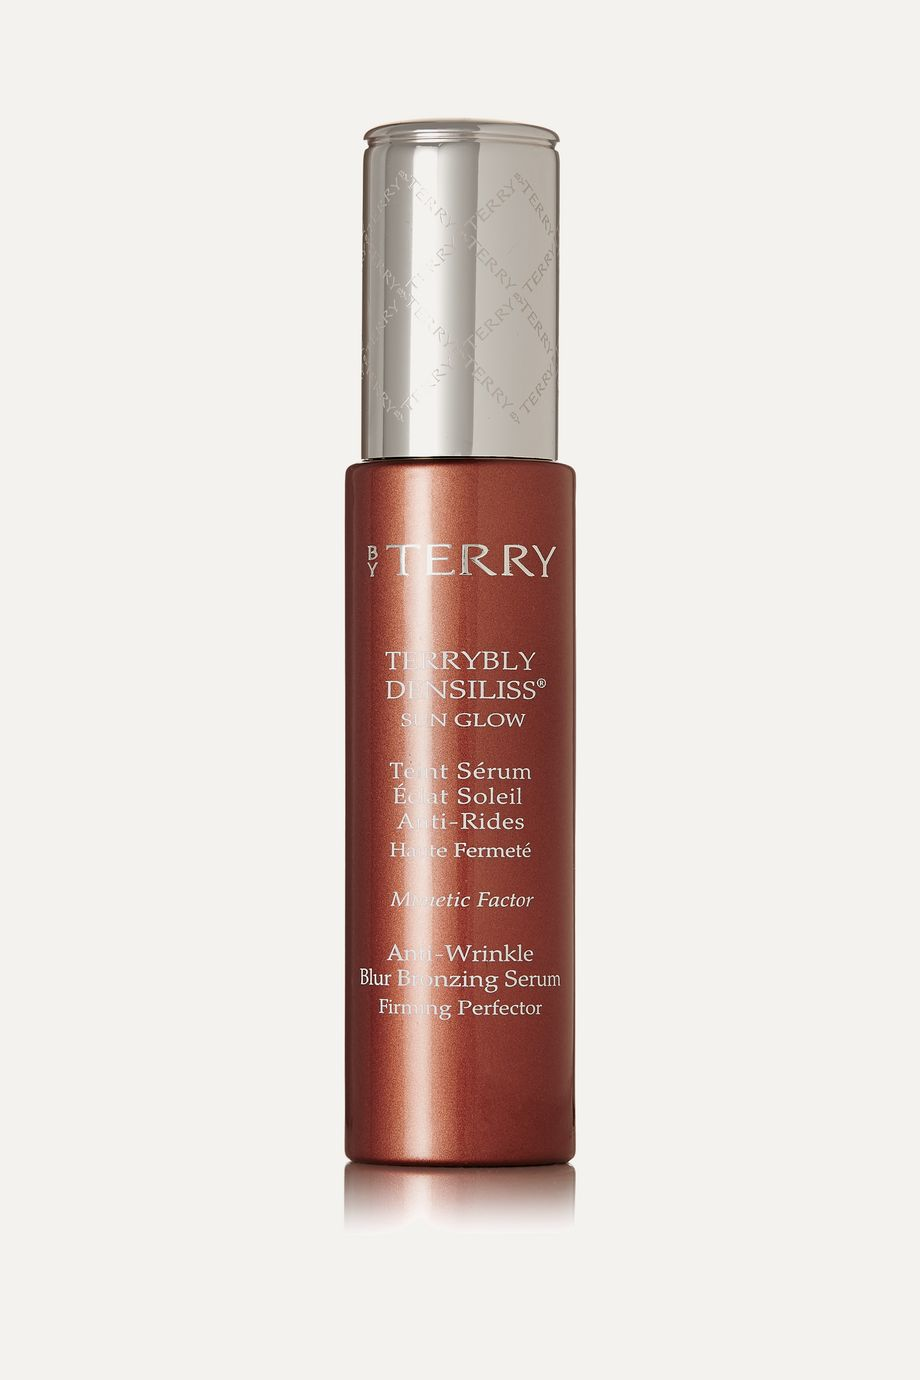 BY TERRY Terrybly Densiliss® Sun Glow - Sun Bronze 3, 30ml